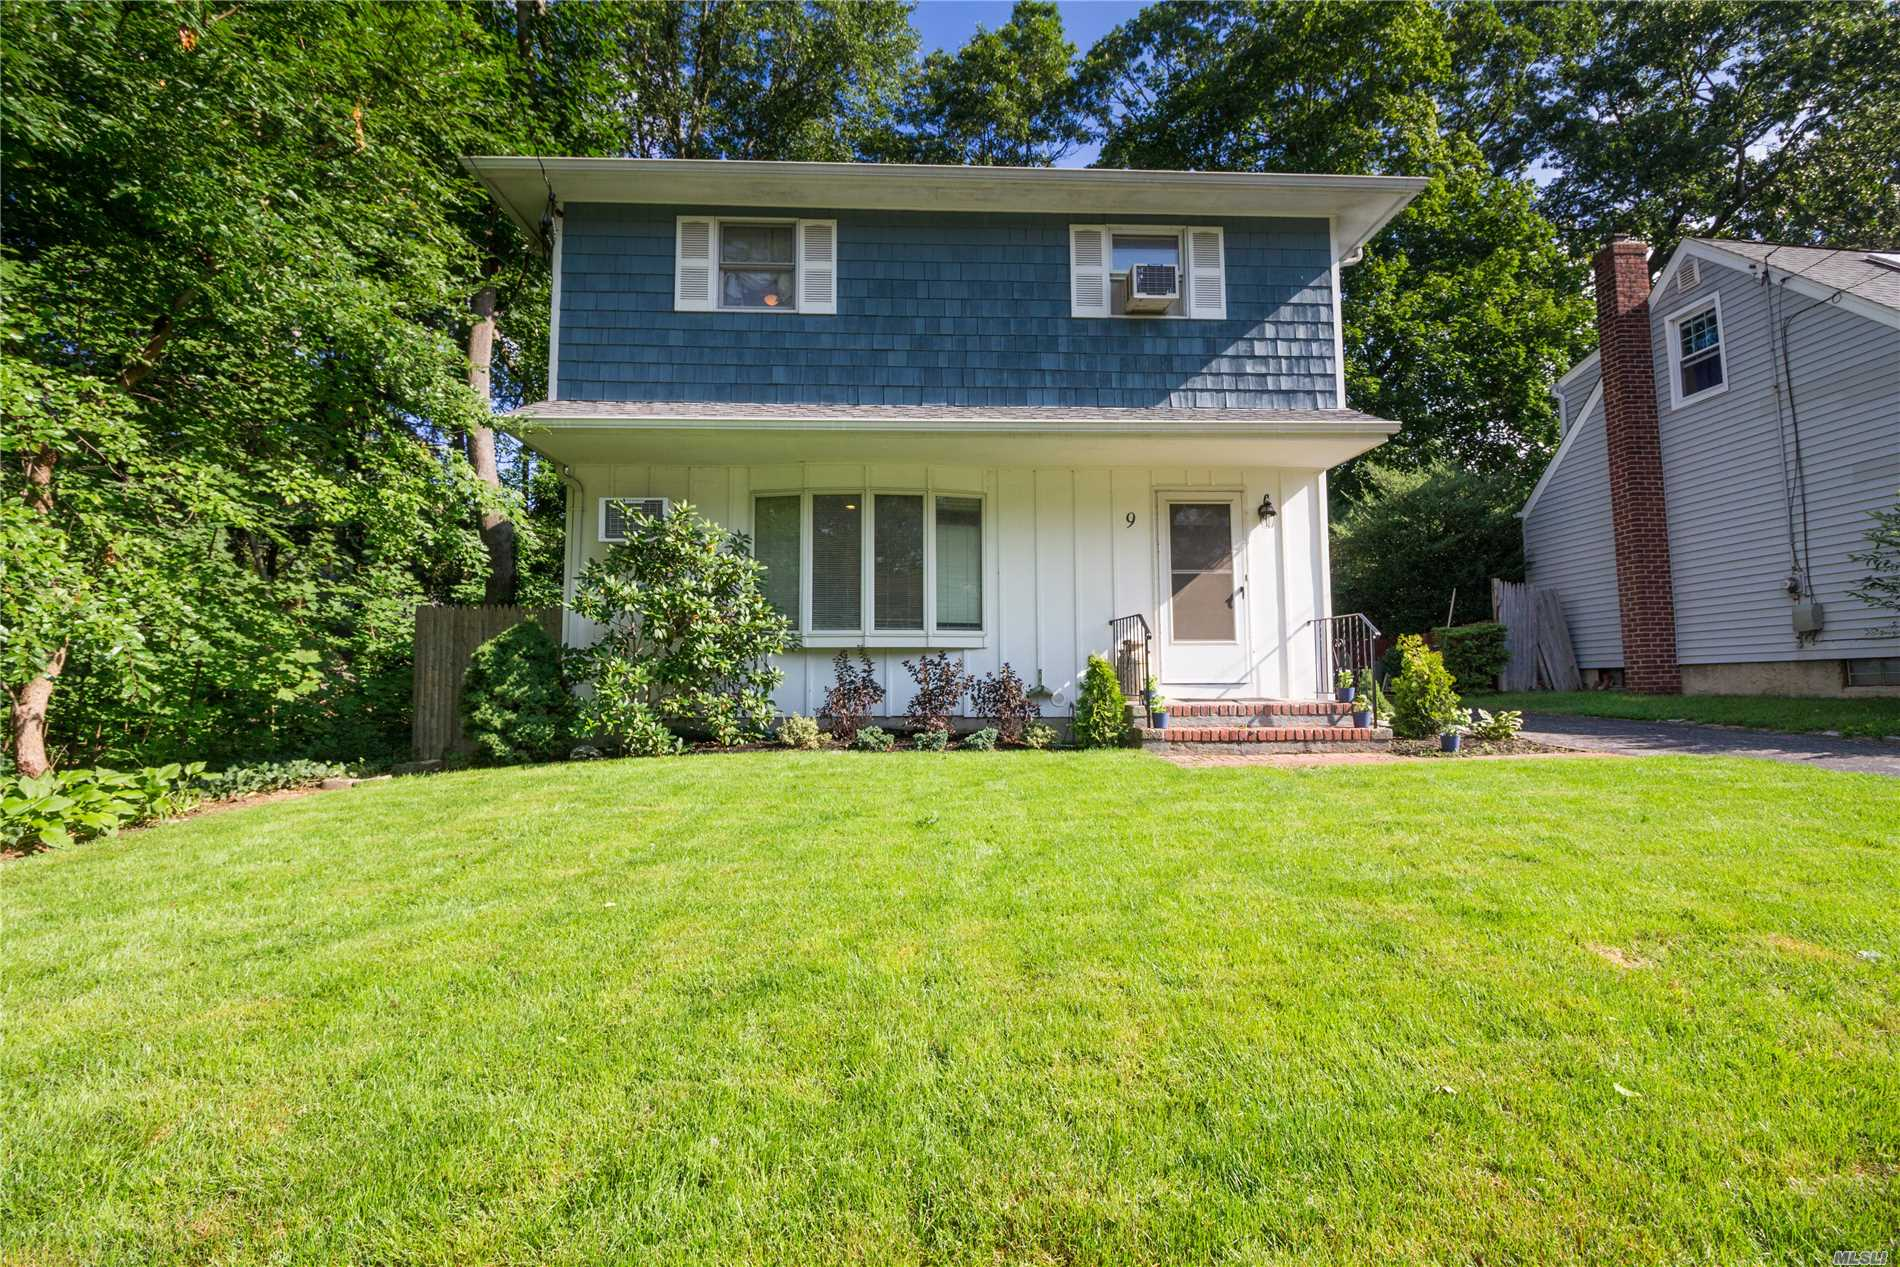 Photo of home for sale at 9 Leeds St, South Huntington NY